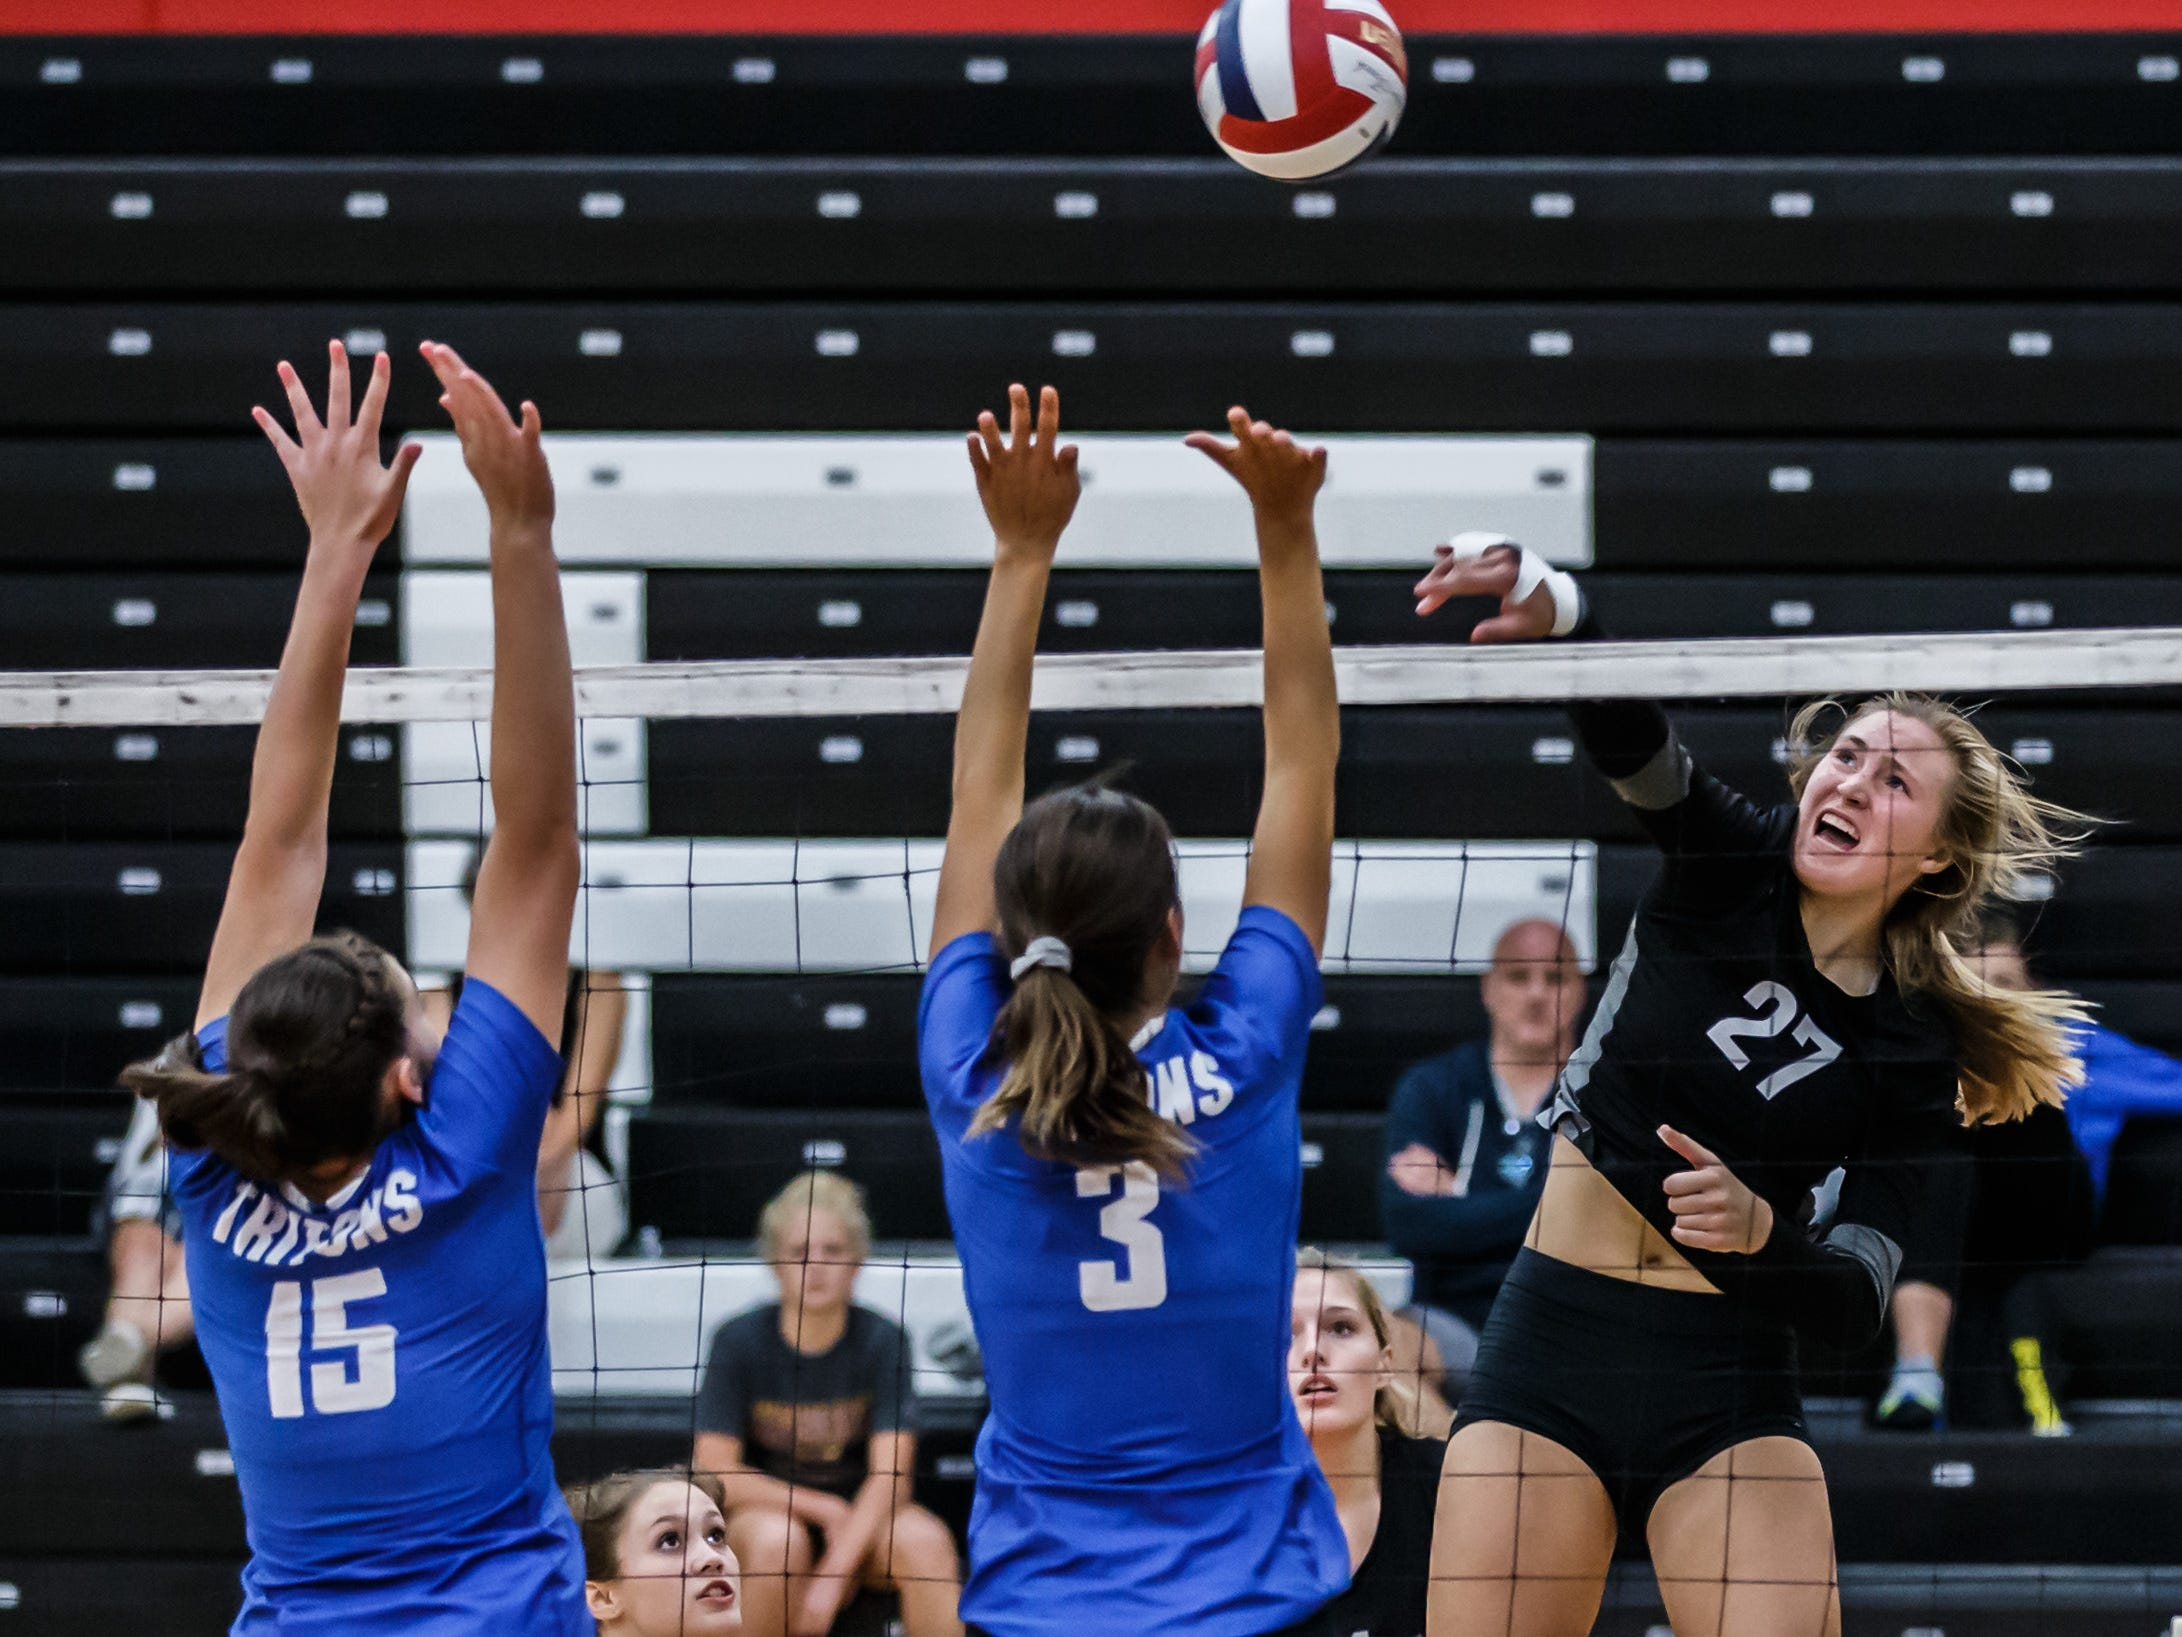 Pewaukee's Elsa Sheperd (27) elevates for a kill during the championship match against Notre Dame Academy in the Lady Pirate Invitational at Pewaukee on Saturday, Sept. 15, 2018.